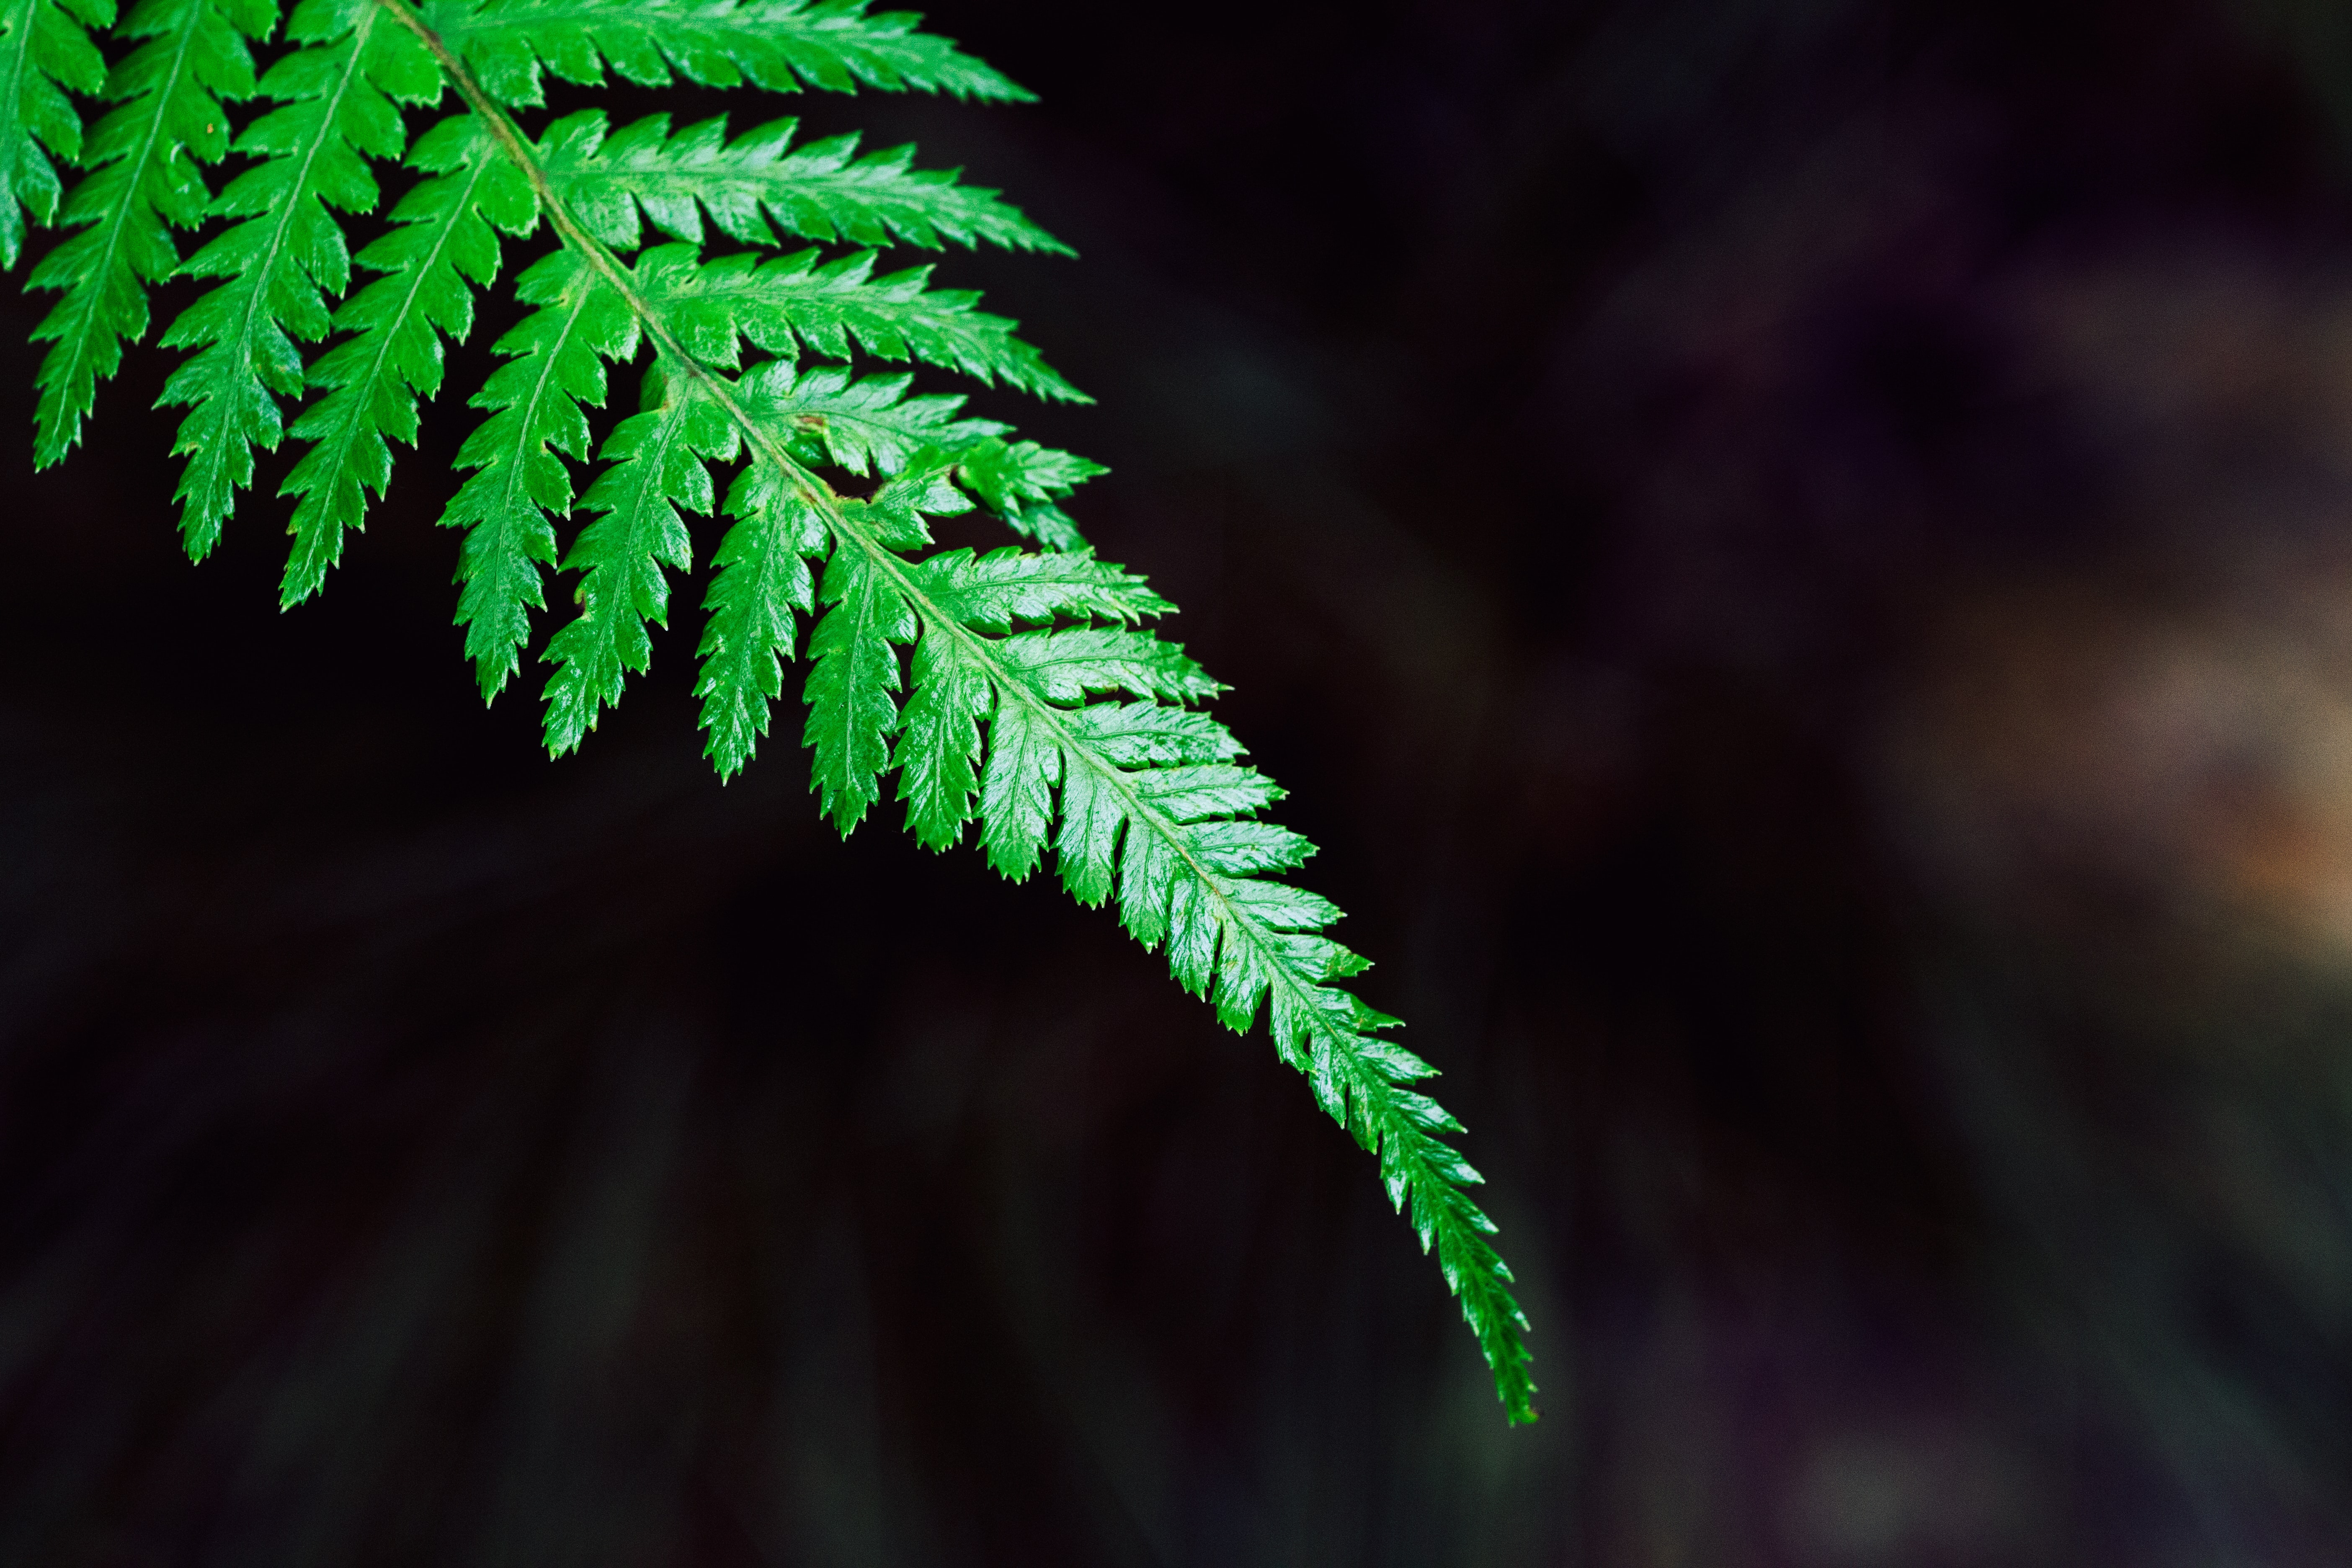 Leaves on a green fern plant